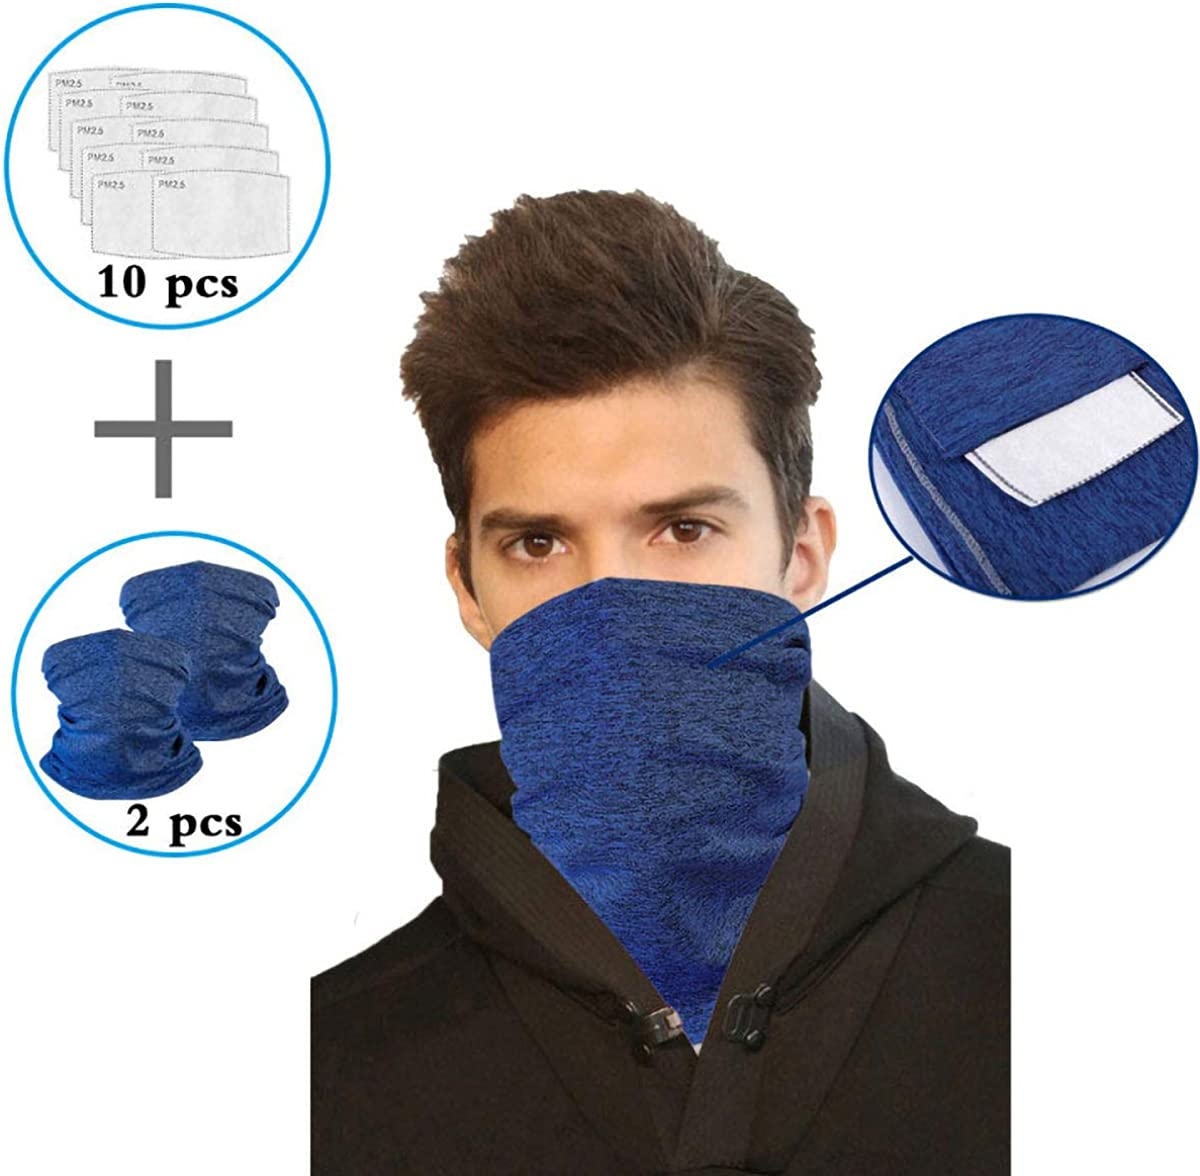 Dust Protection Breathable Hepa Headbands Washable Half Face Scarf Bandana Balaclava Neck Gaiter Headwear Face Cover for Saliva Filters Outdoors for Women